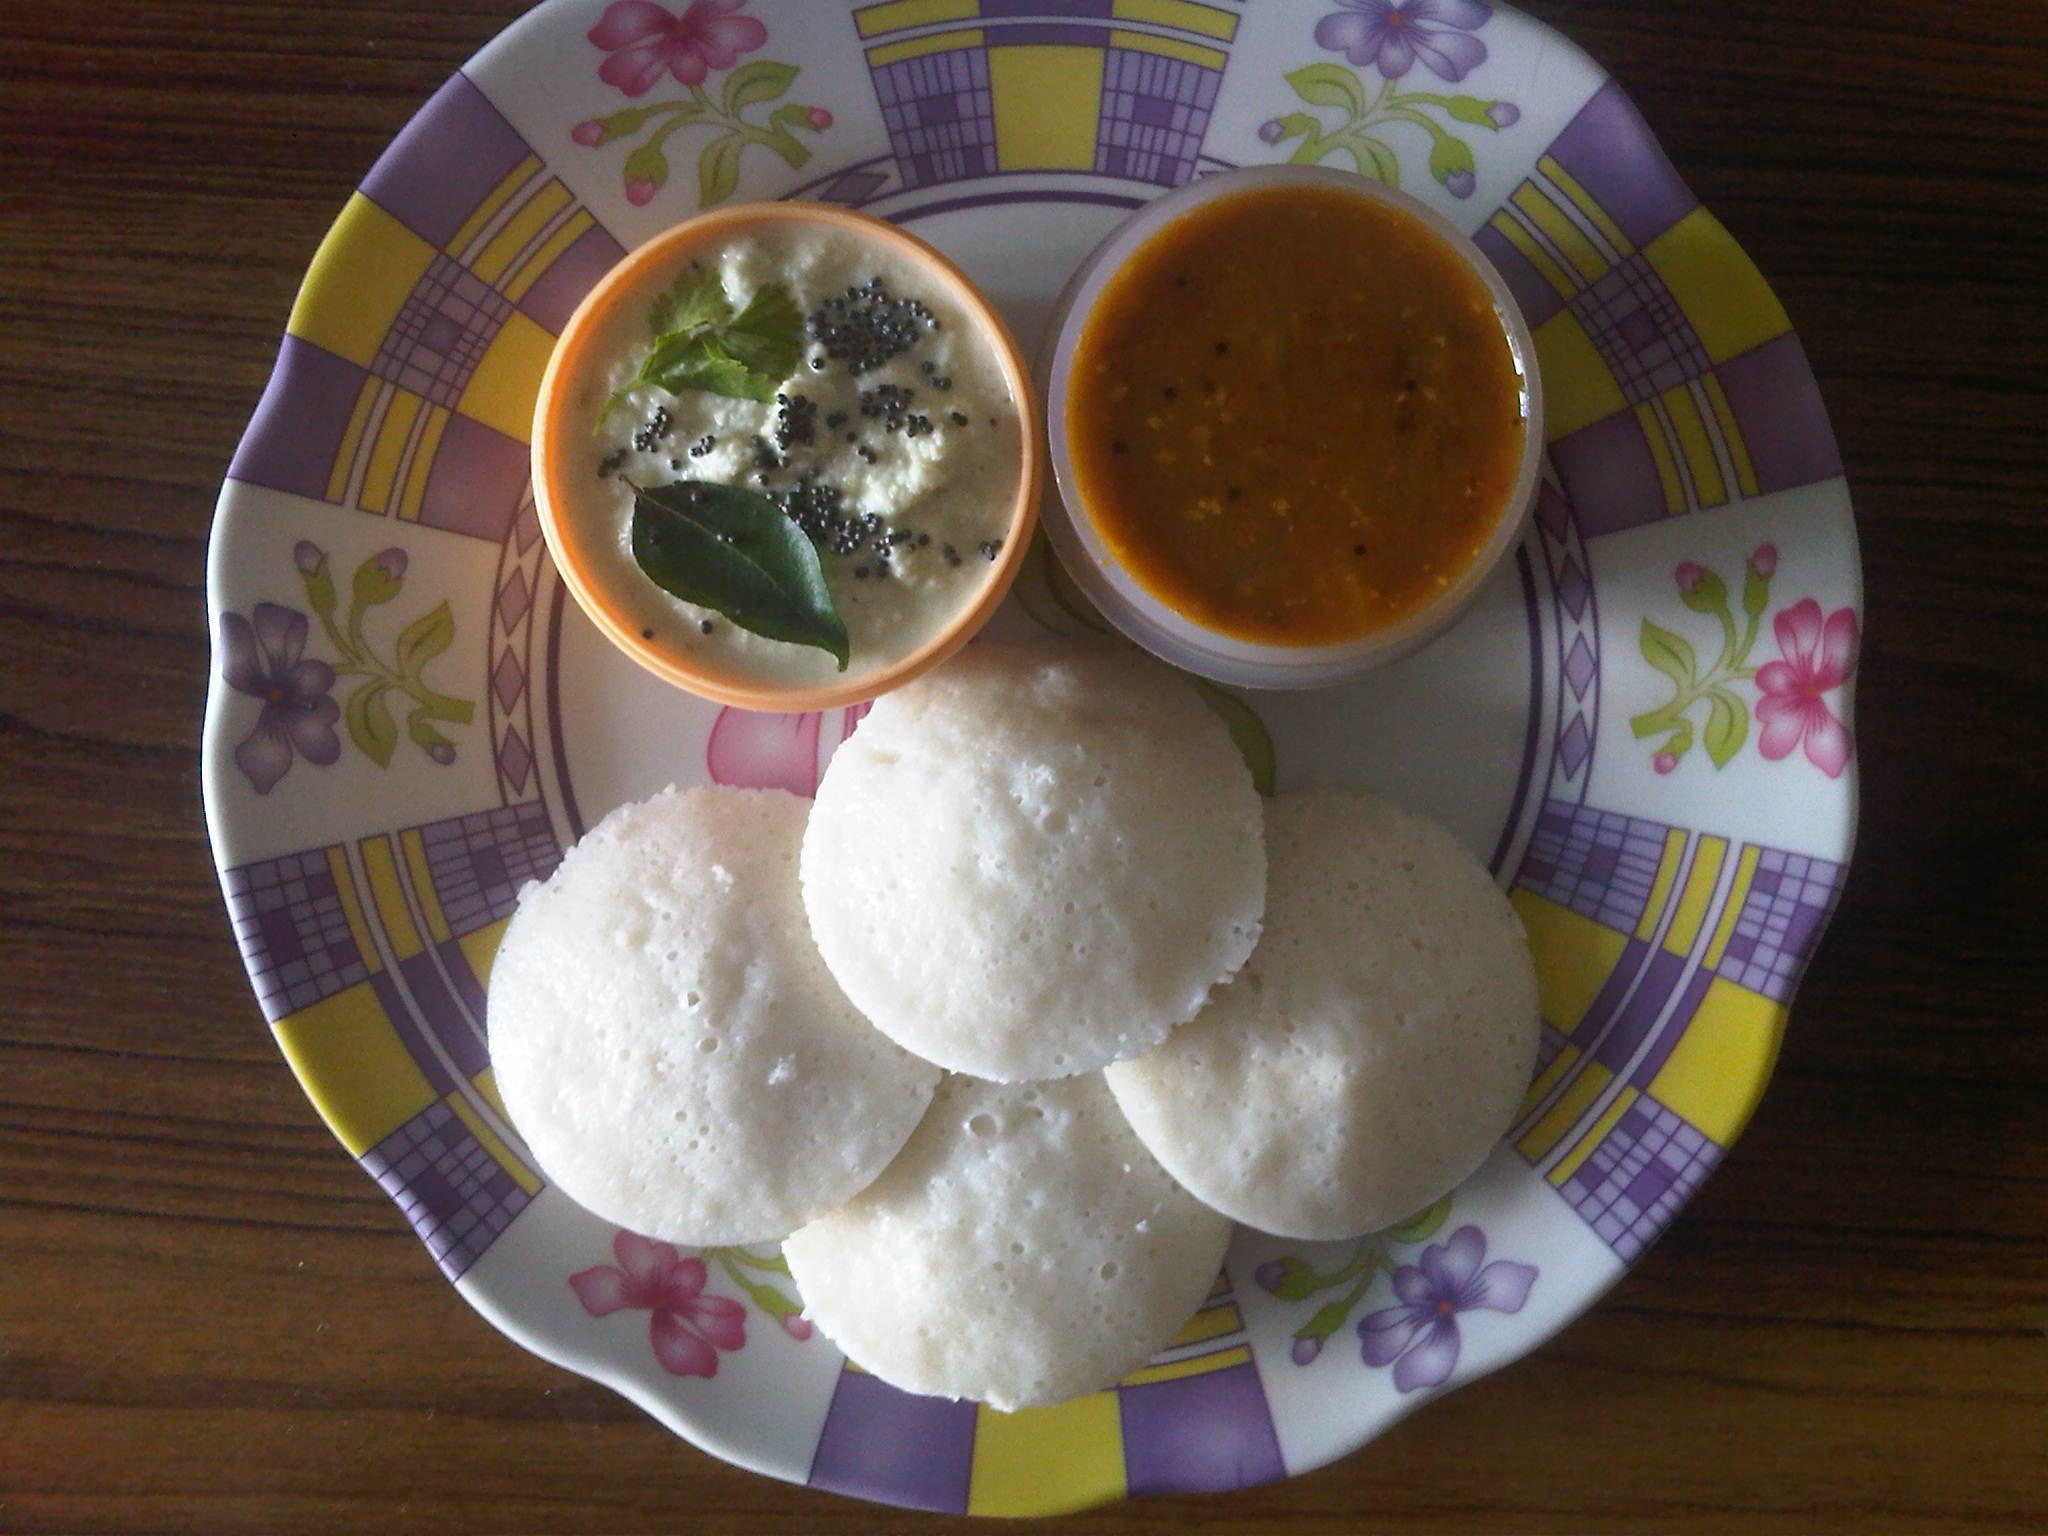 Idly with chutney and sambar